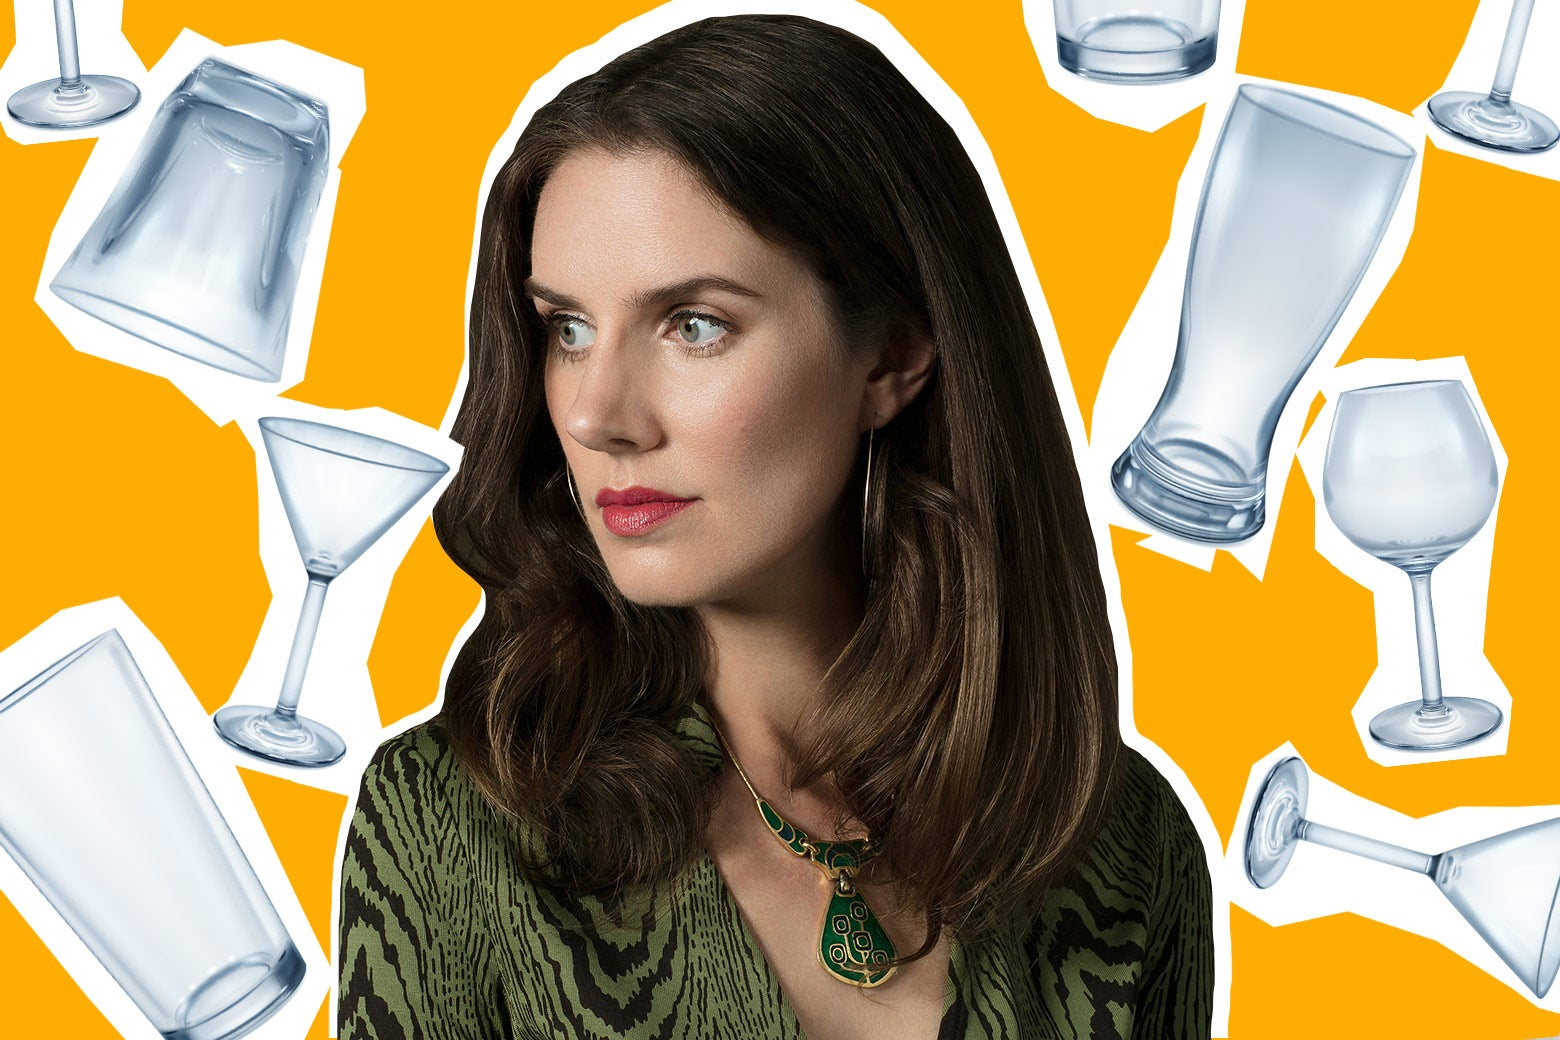 Leslie Jamison surrounded by various glasses—pint glasses, martini glasses, a wine glass, a tumbler.